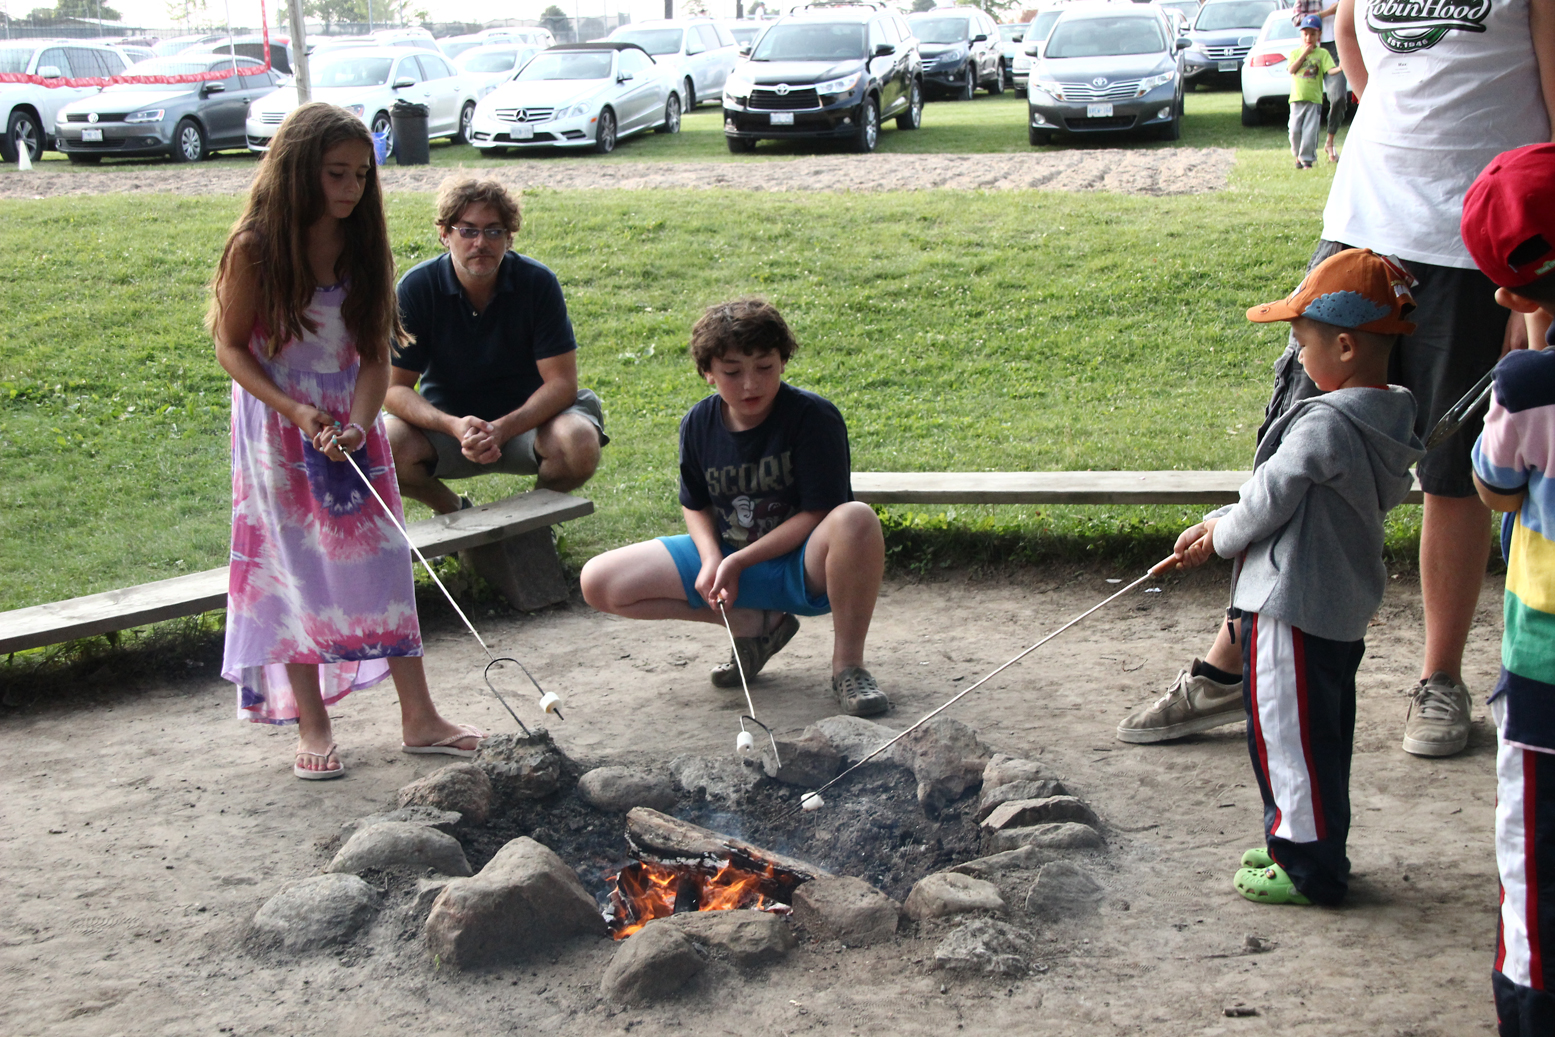 A girl and boy roast marshmallows on a long stick over a campfire at Camp Robin Hood. This camp provides traditional outdoor camp-style activities but is a day camp where children go home each night on free door-to-door bus service.